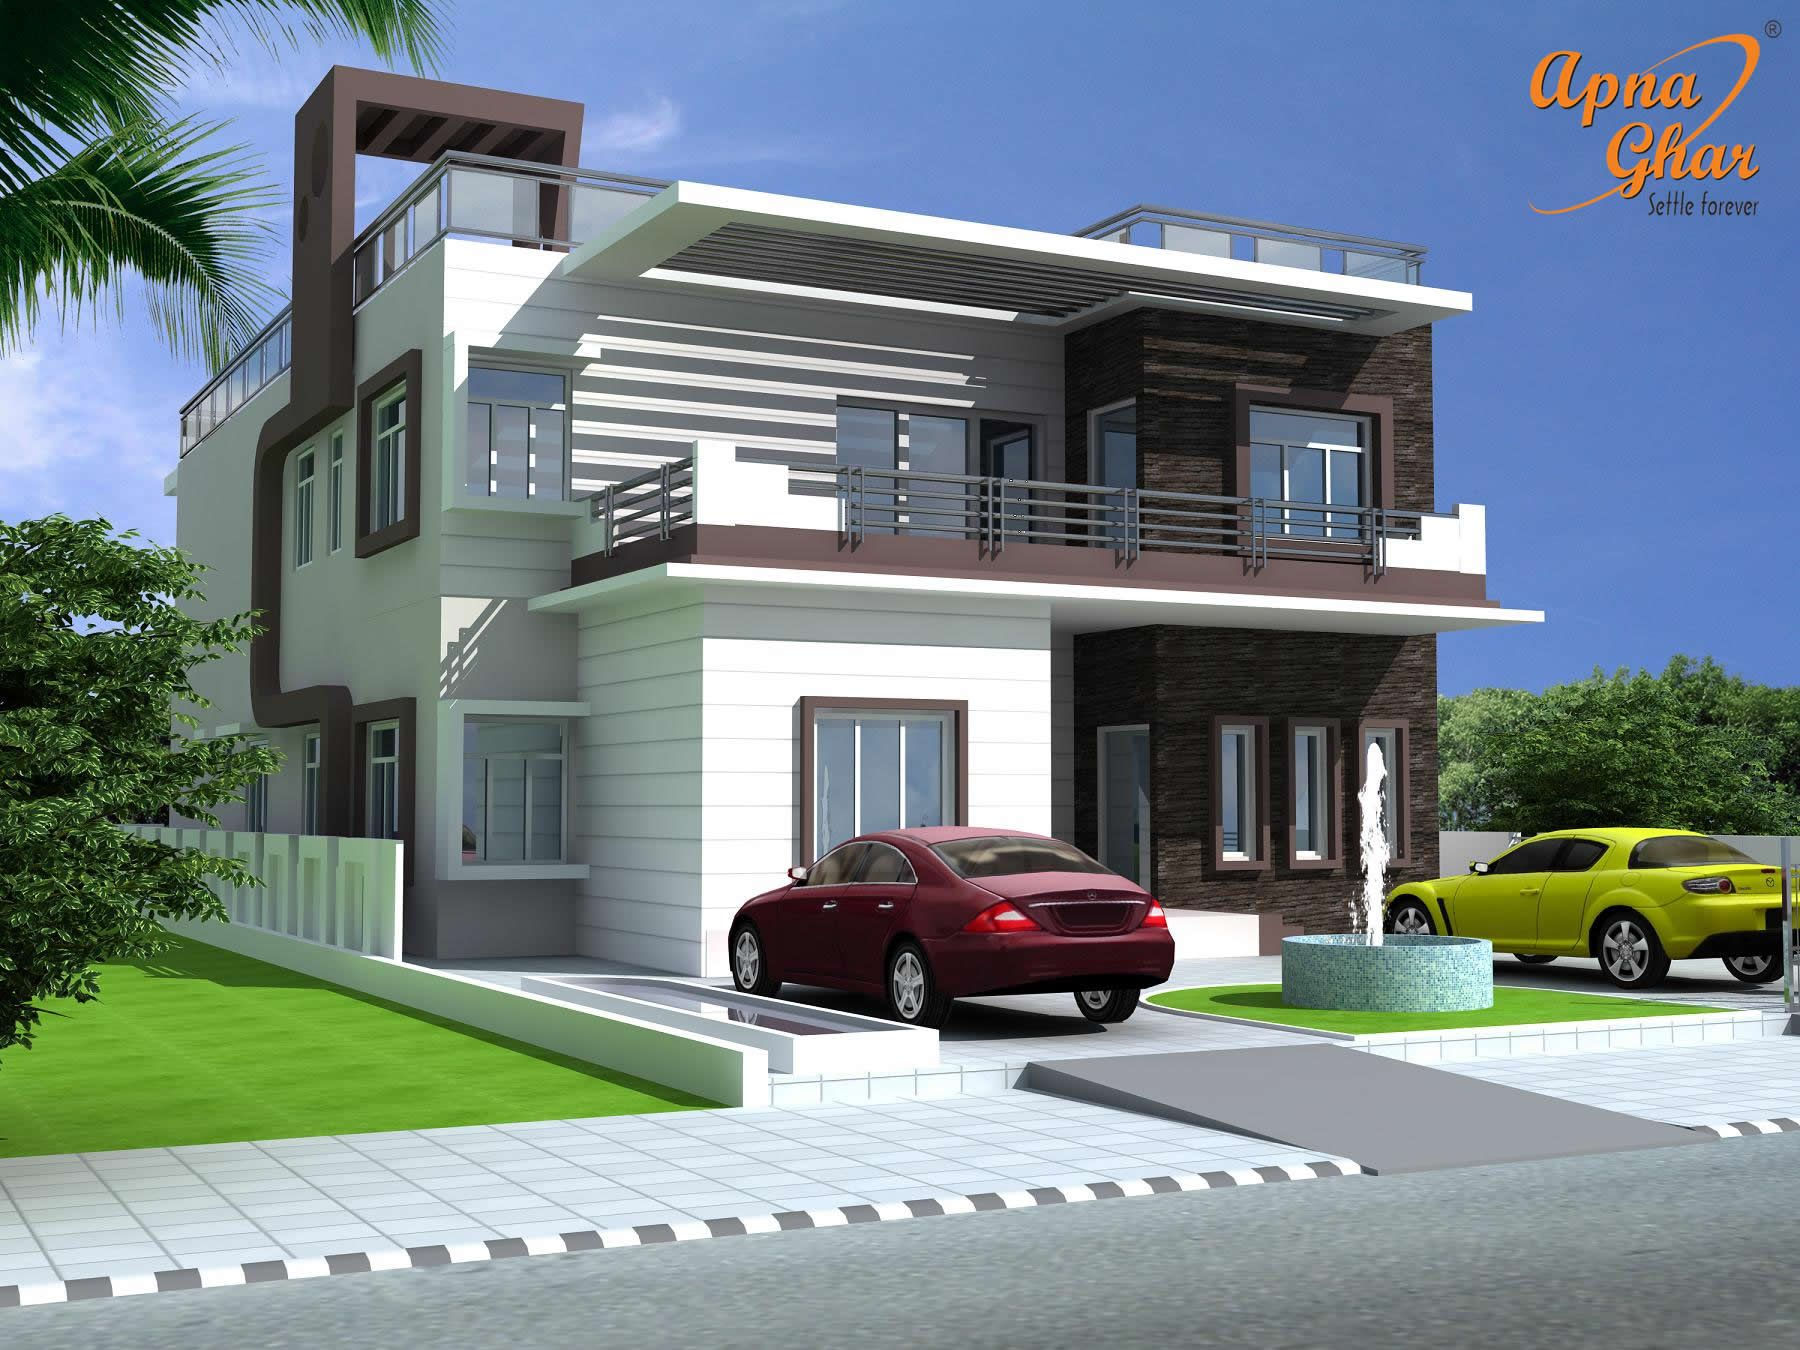 6 bedrooms duplex house design in 390m2 13m x 30m click for Duplex home interior photos